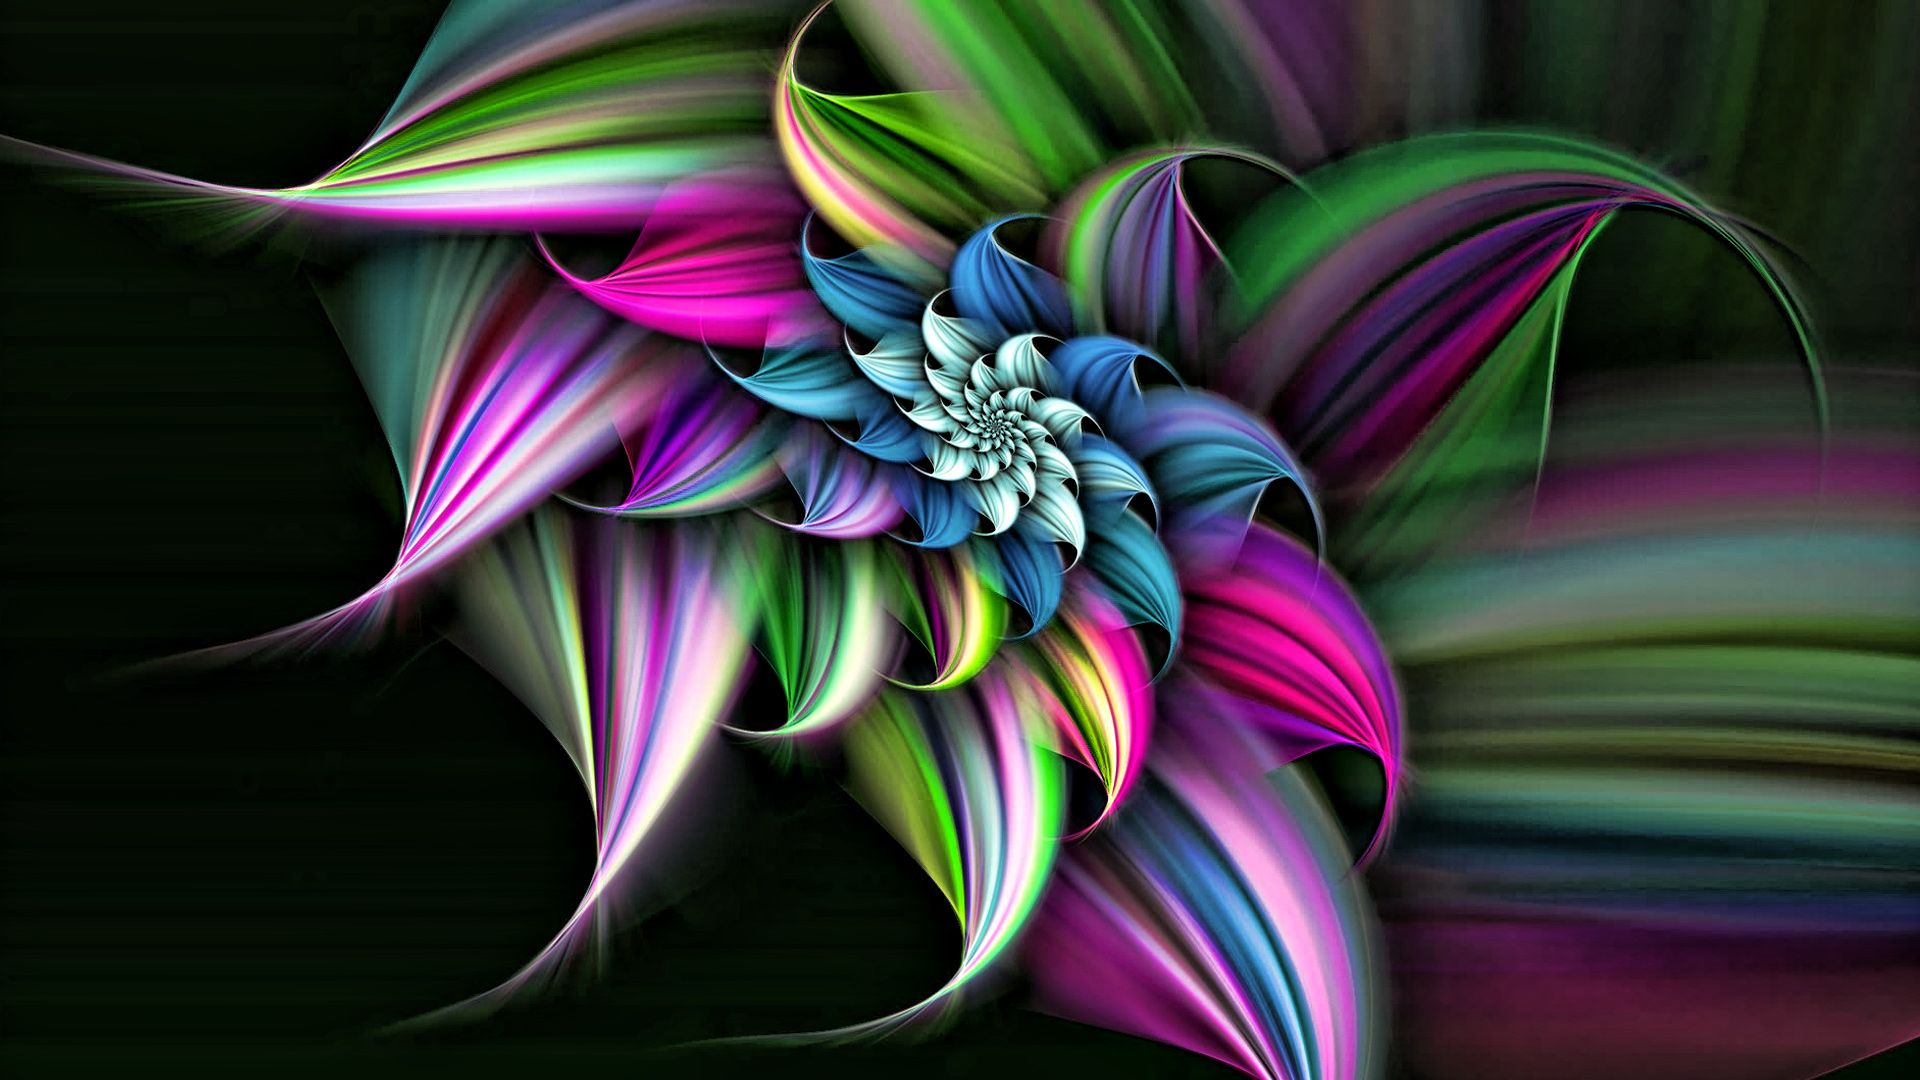 3D Images Rainbow Flower Wallpapers Free Download Wallpaper